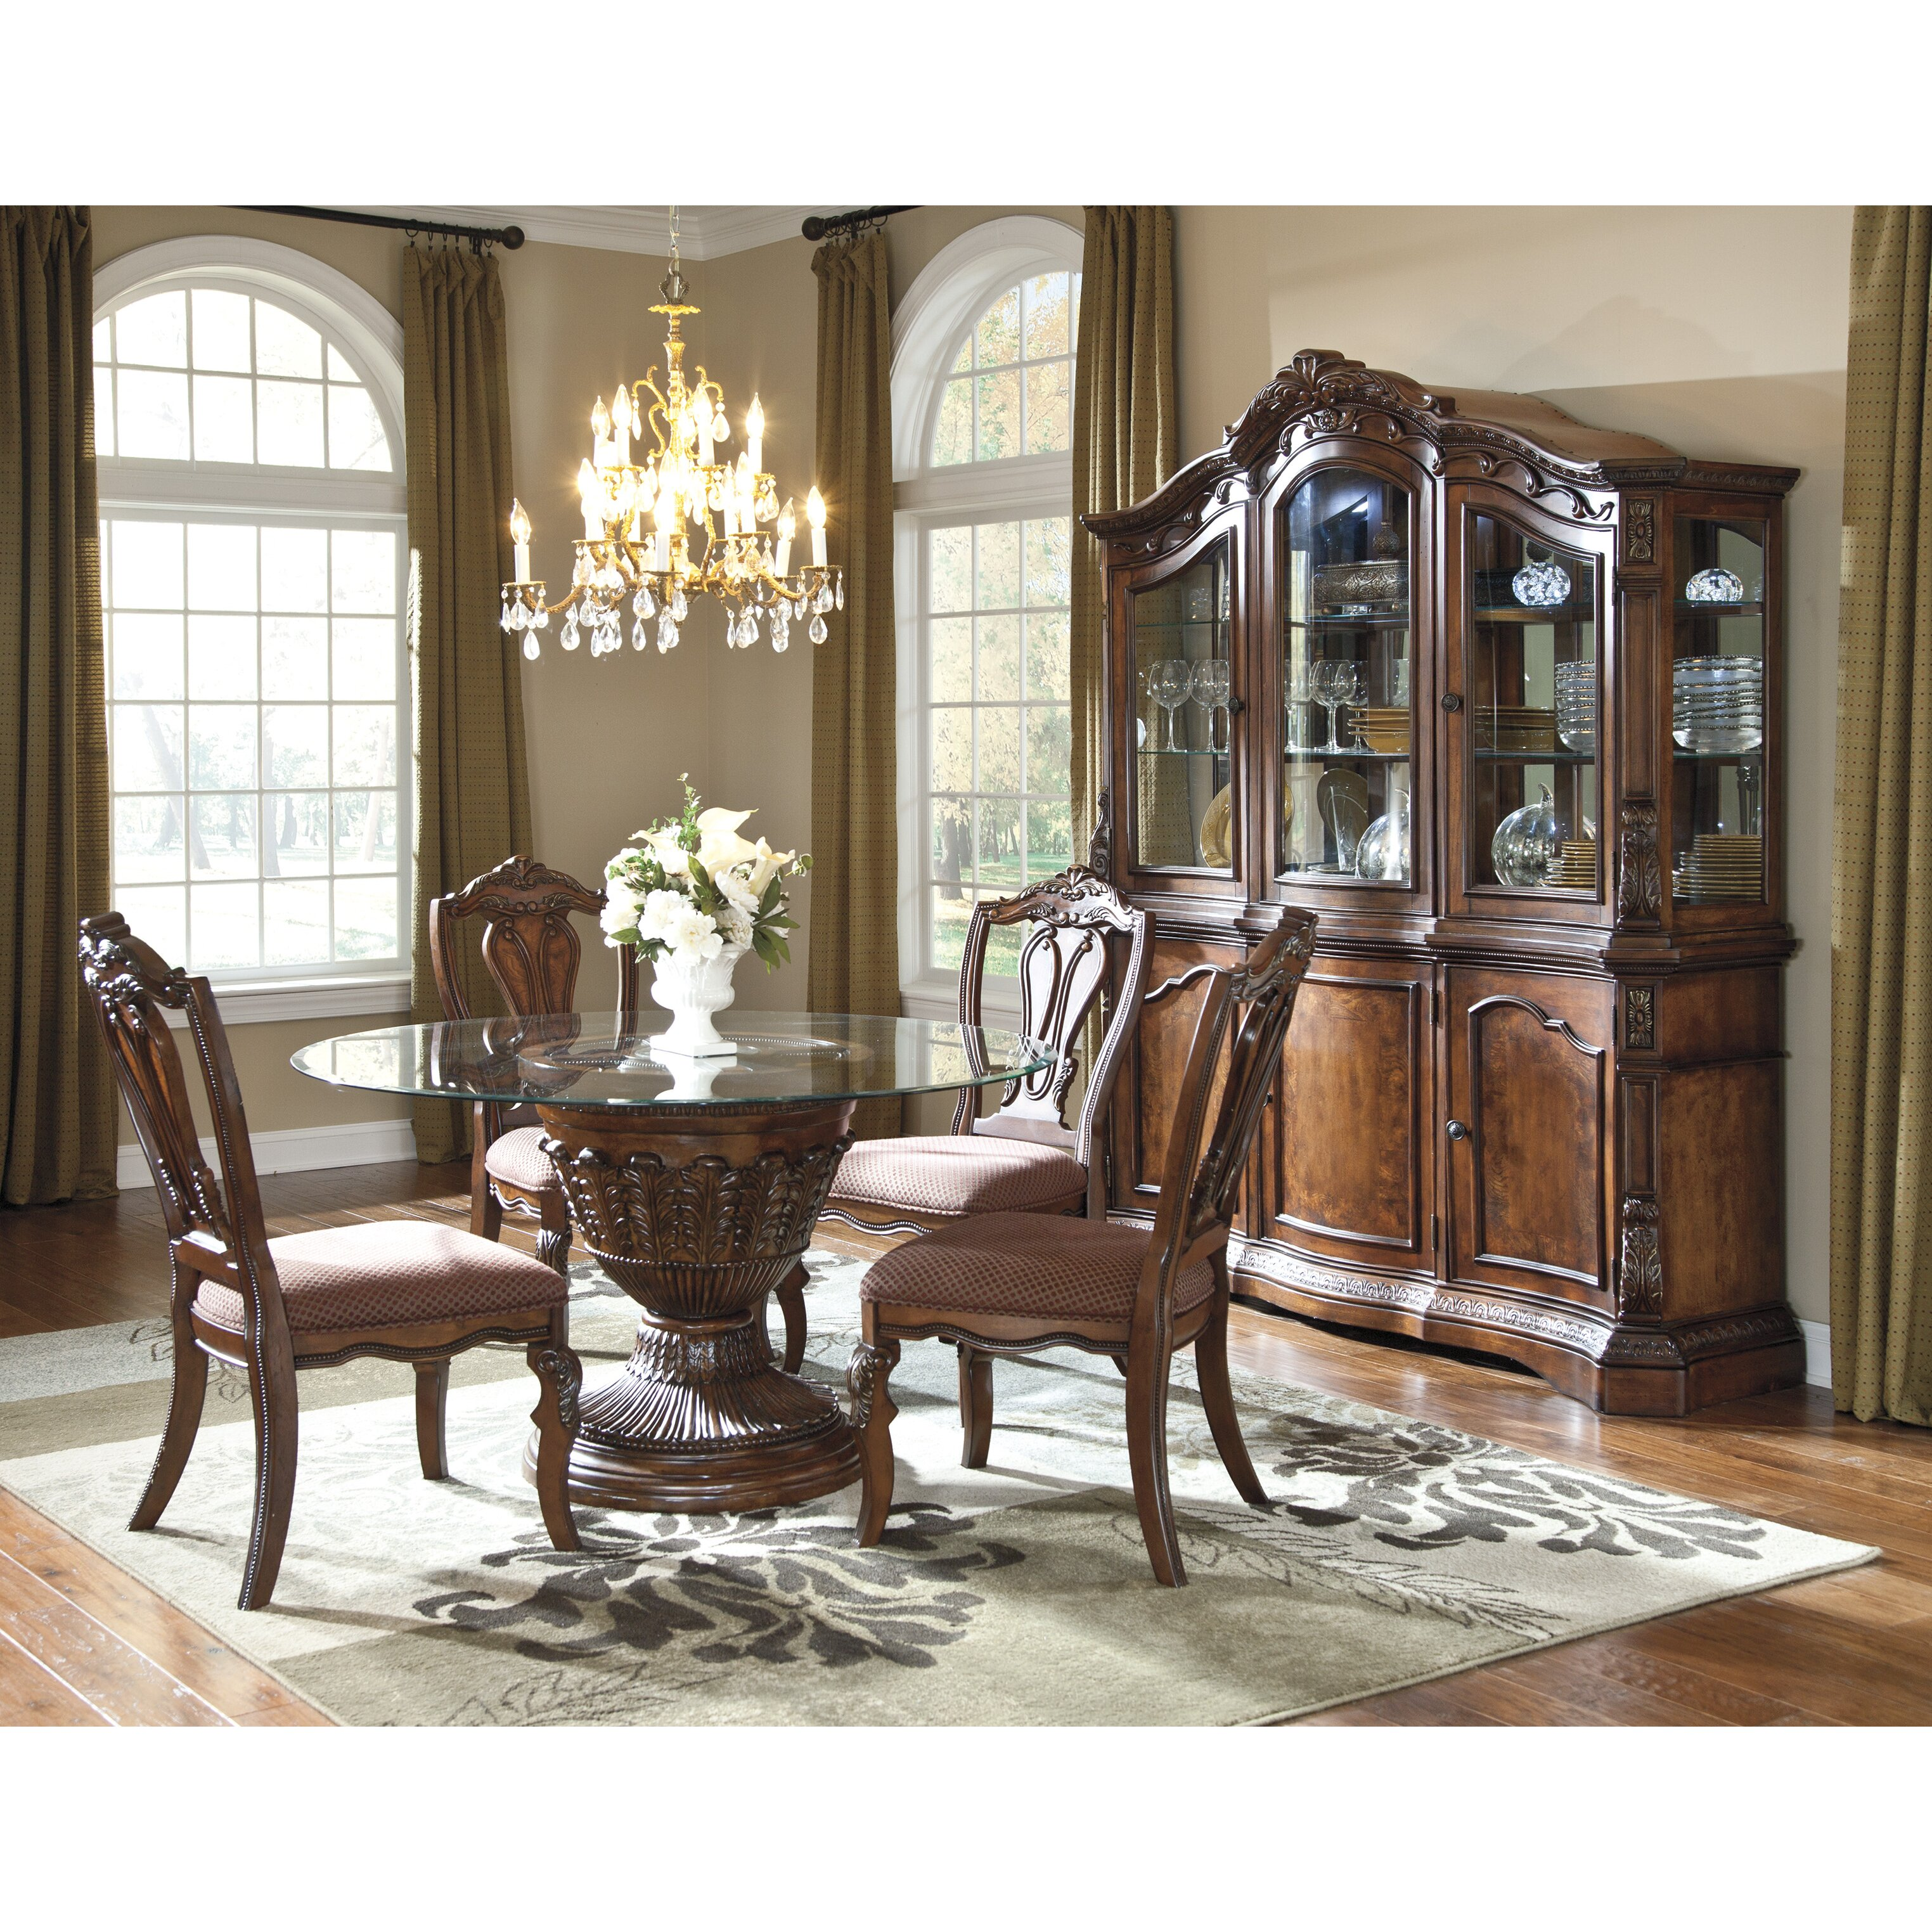 Ashley S Nest Decorating A Dining Room: Signature Design By Ashley Ledelle Dining Room Buffet